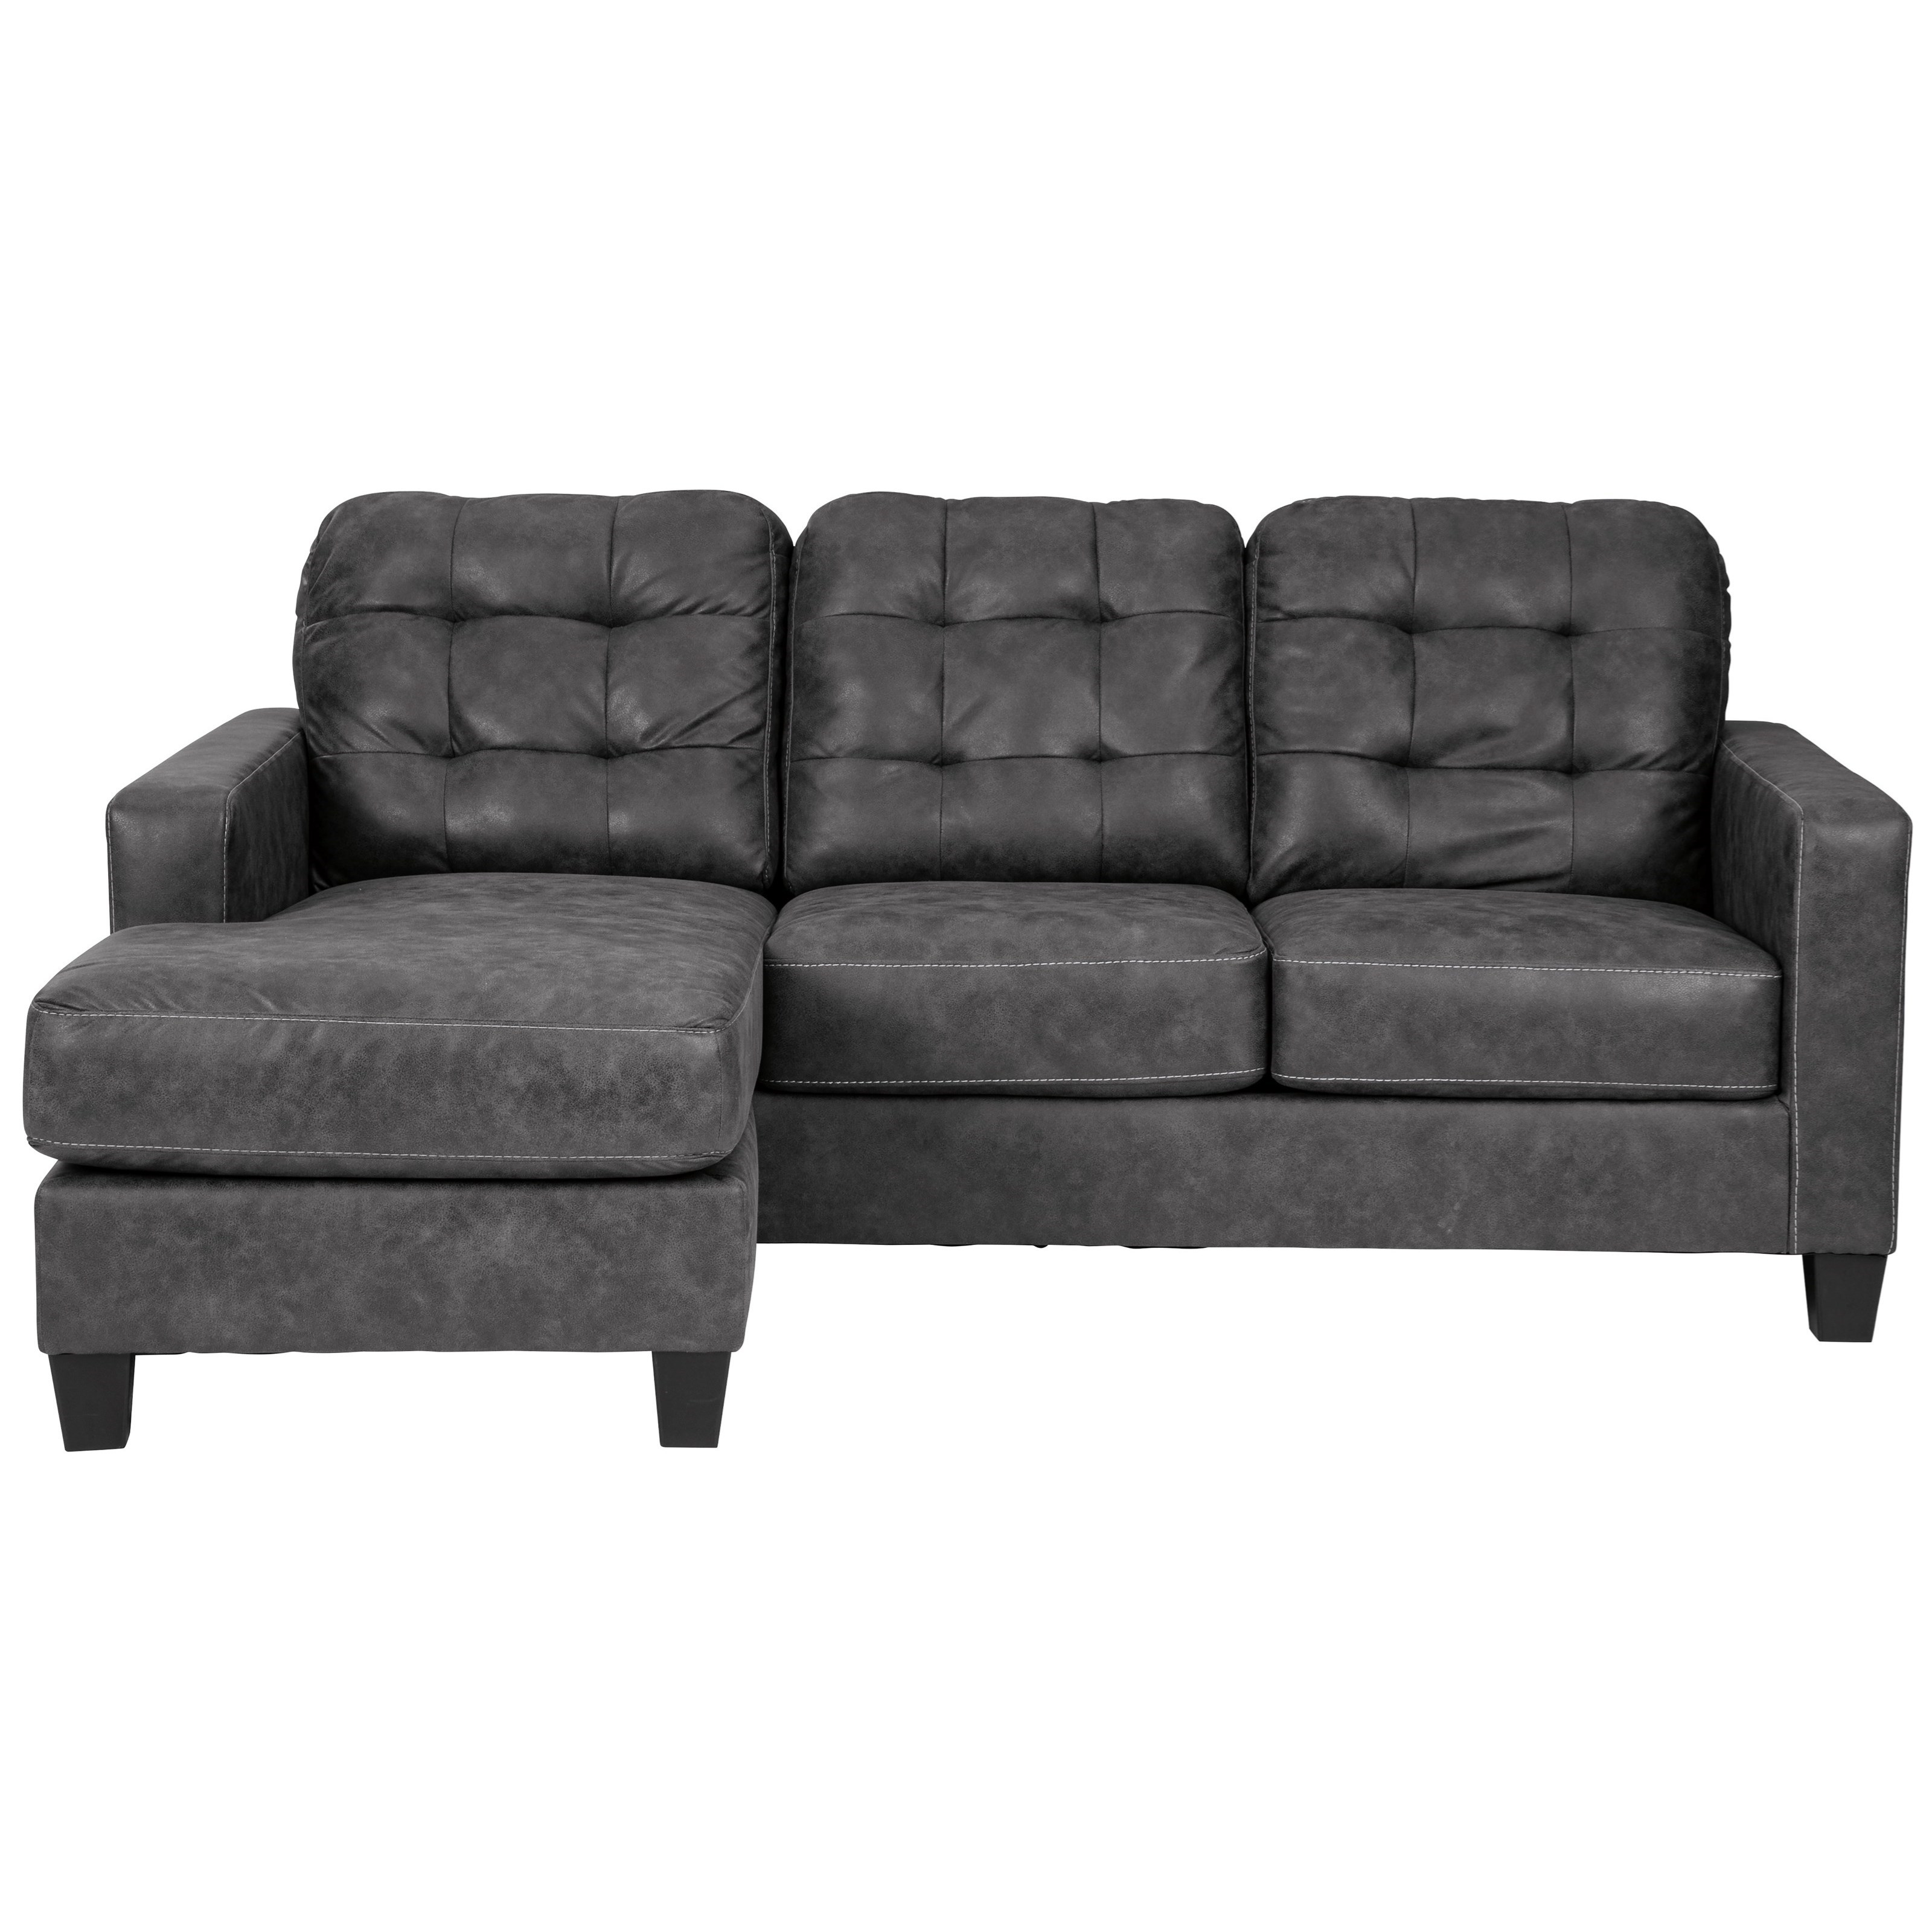 Venaldi Sofa with Chaise by Benchcraft at Miller Waldrop Furniture and Decor